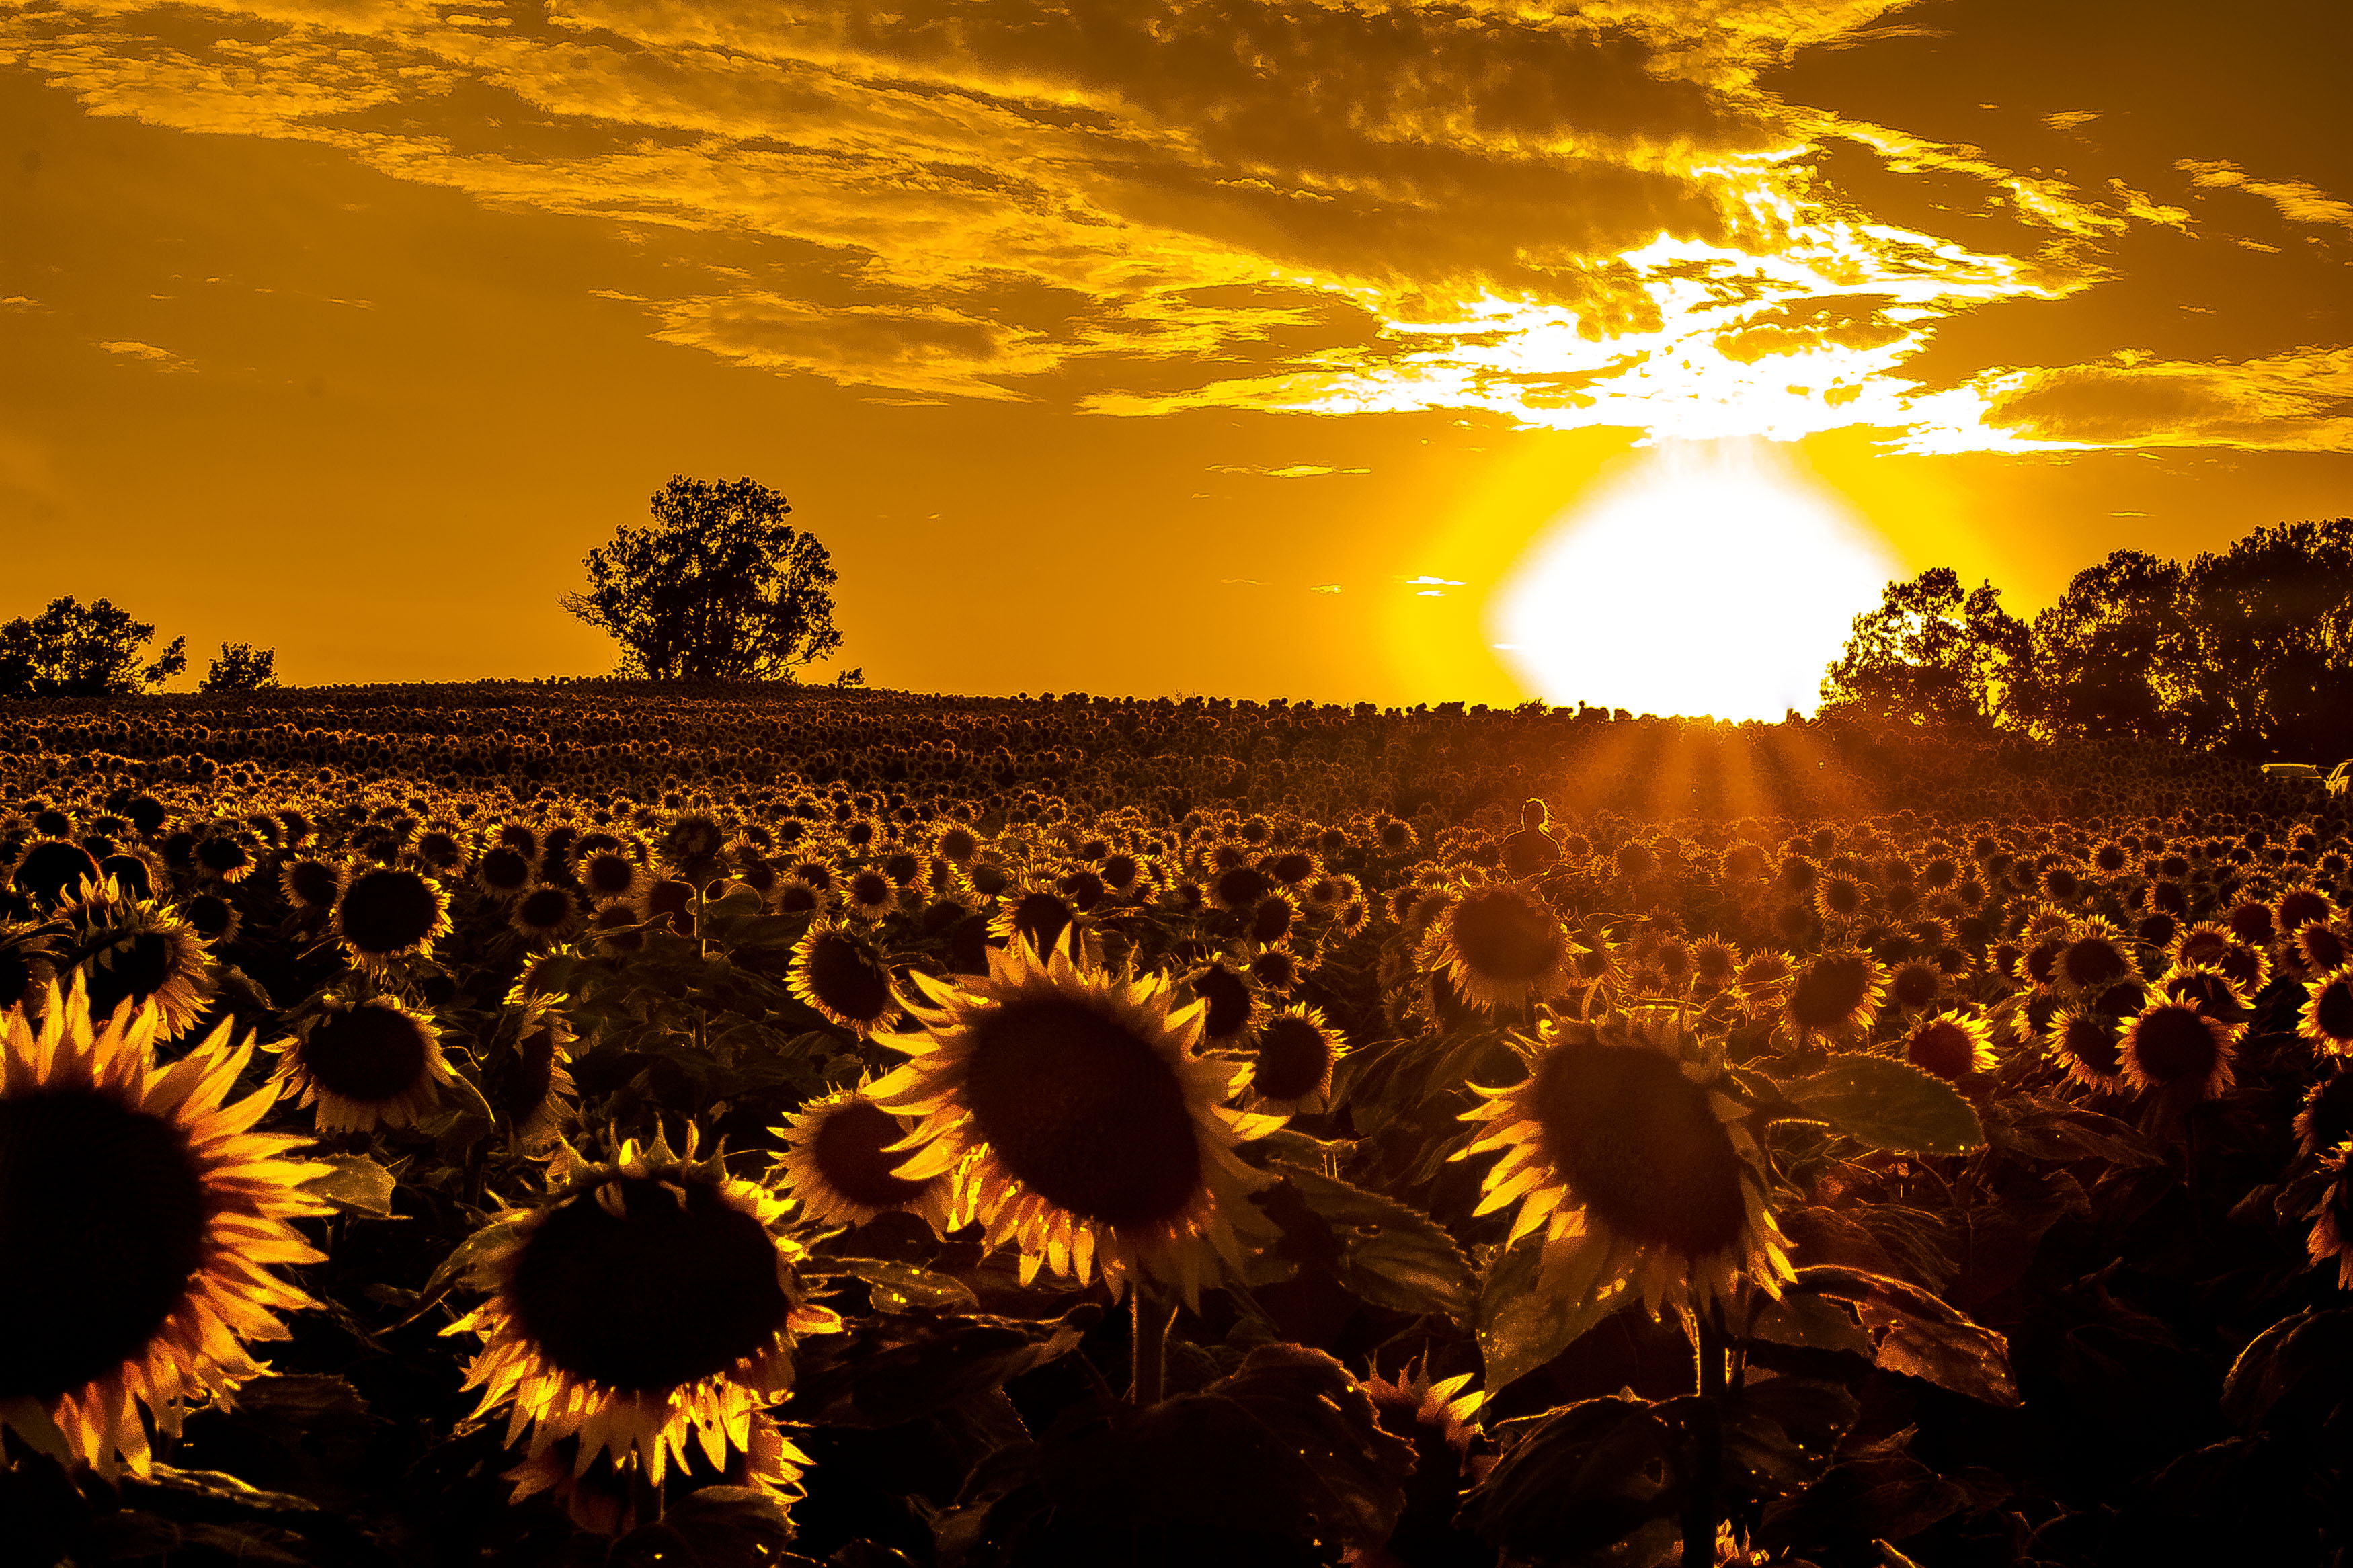 Sunflower Field, a photo from Kansas, Midwest | TrekEarth